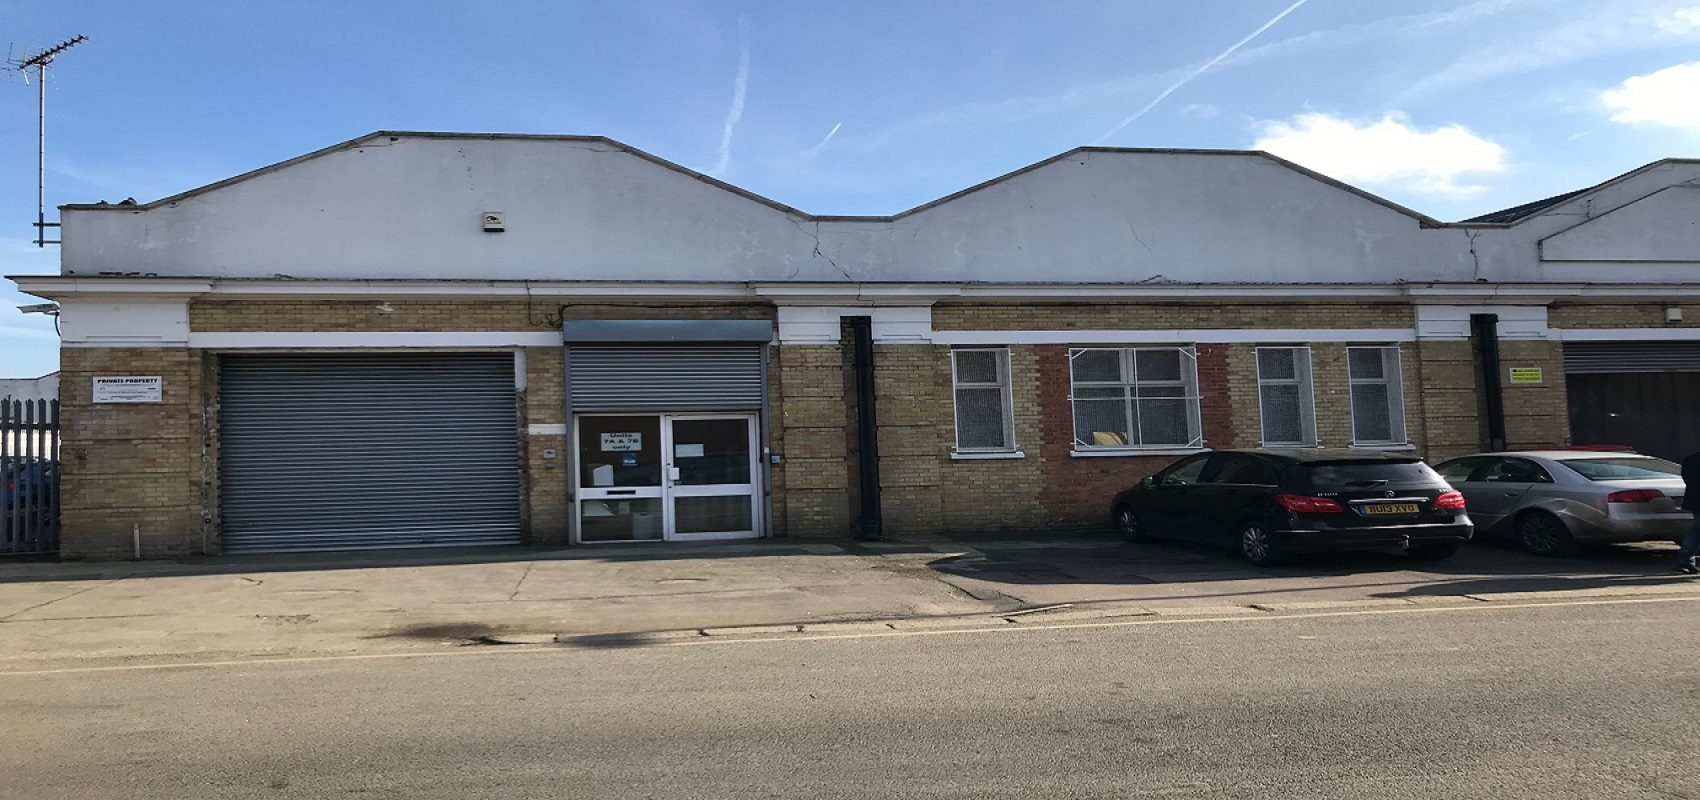 MODERN SINGLE STOREY FACTORY/ WAREHOUSE WITH PARKING – WEST MEWS TOTTENHAM N17